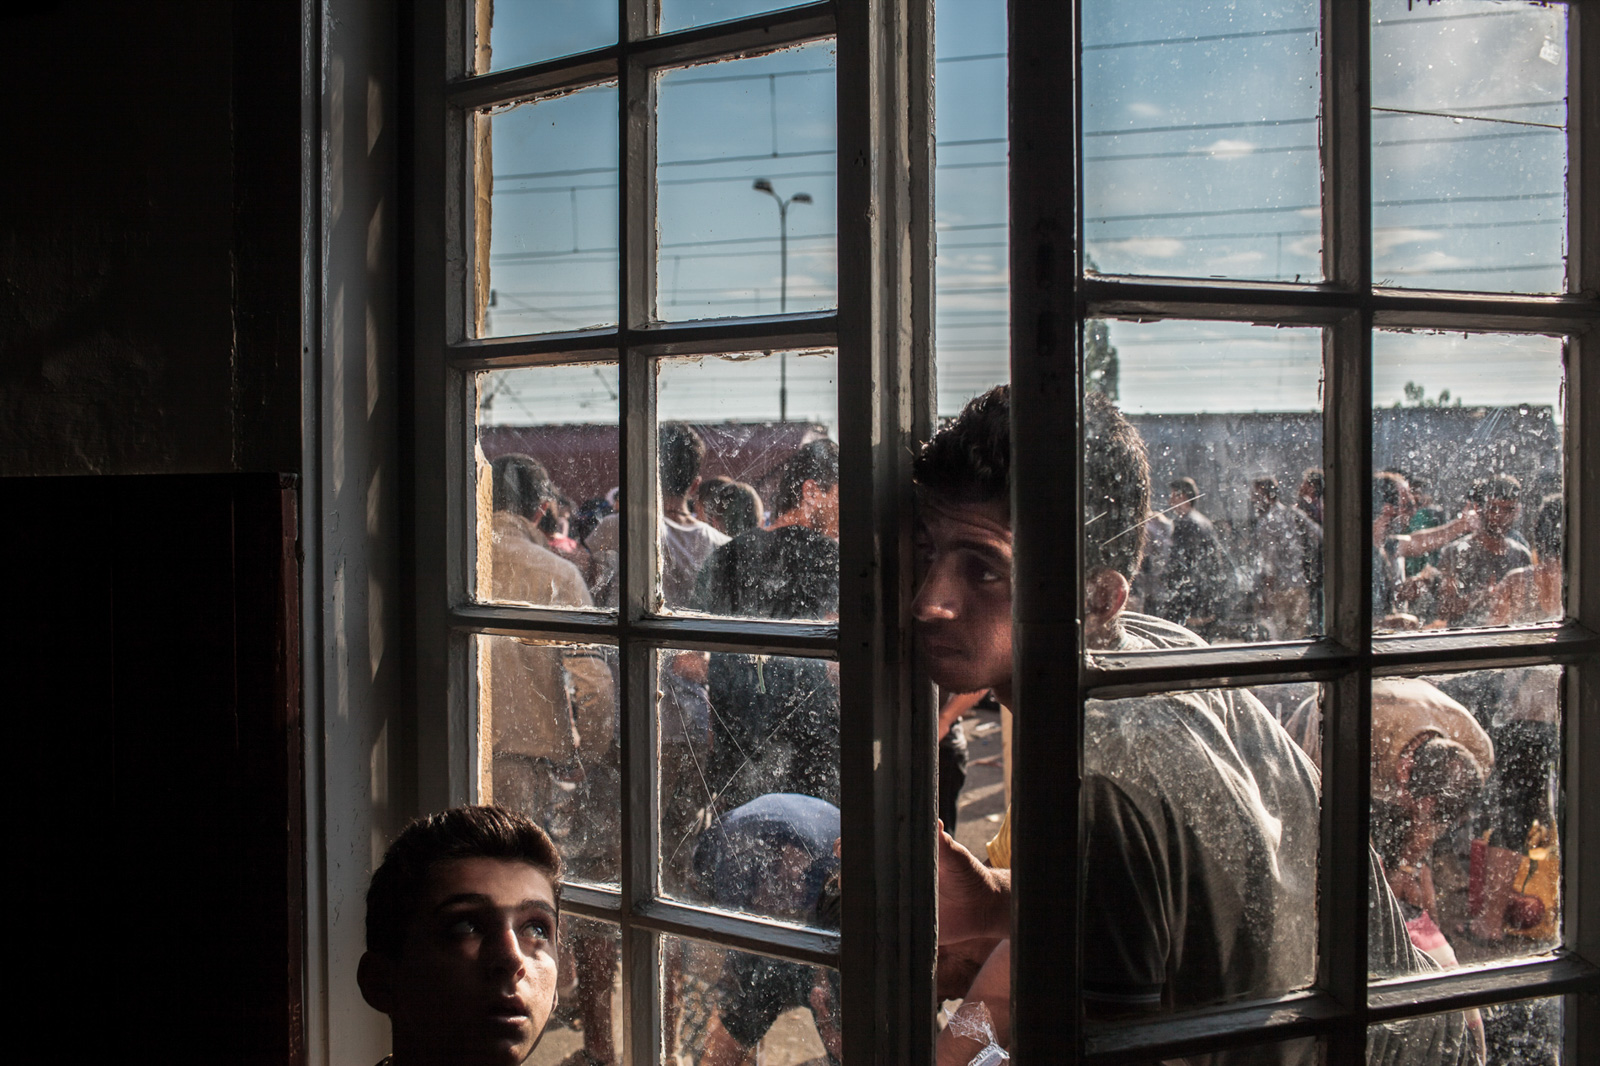 GEVGELIA,MACEDONIA - AUGUST 8, 2015: A young refugee is looking through a window of train station in Gevgelia, Macedonia, while waiting to board the train headed towards Serbia. Each day about 1500 refugees cross from Greece to Macedonian town of Gevgelia with intention to reach any of European Union countries and to receive status of asylum seekers there.